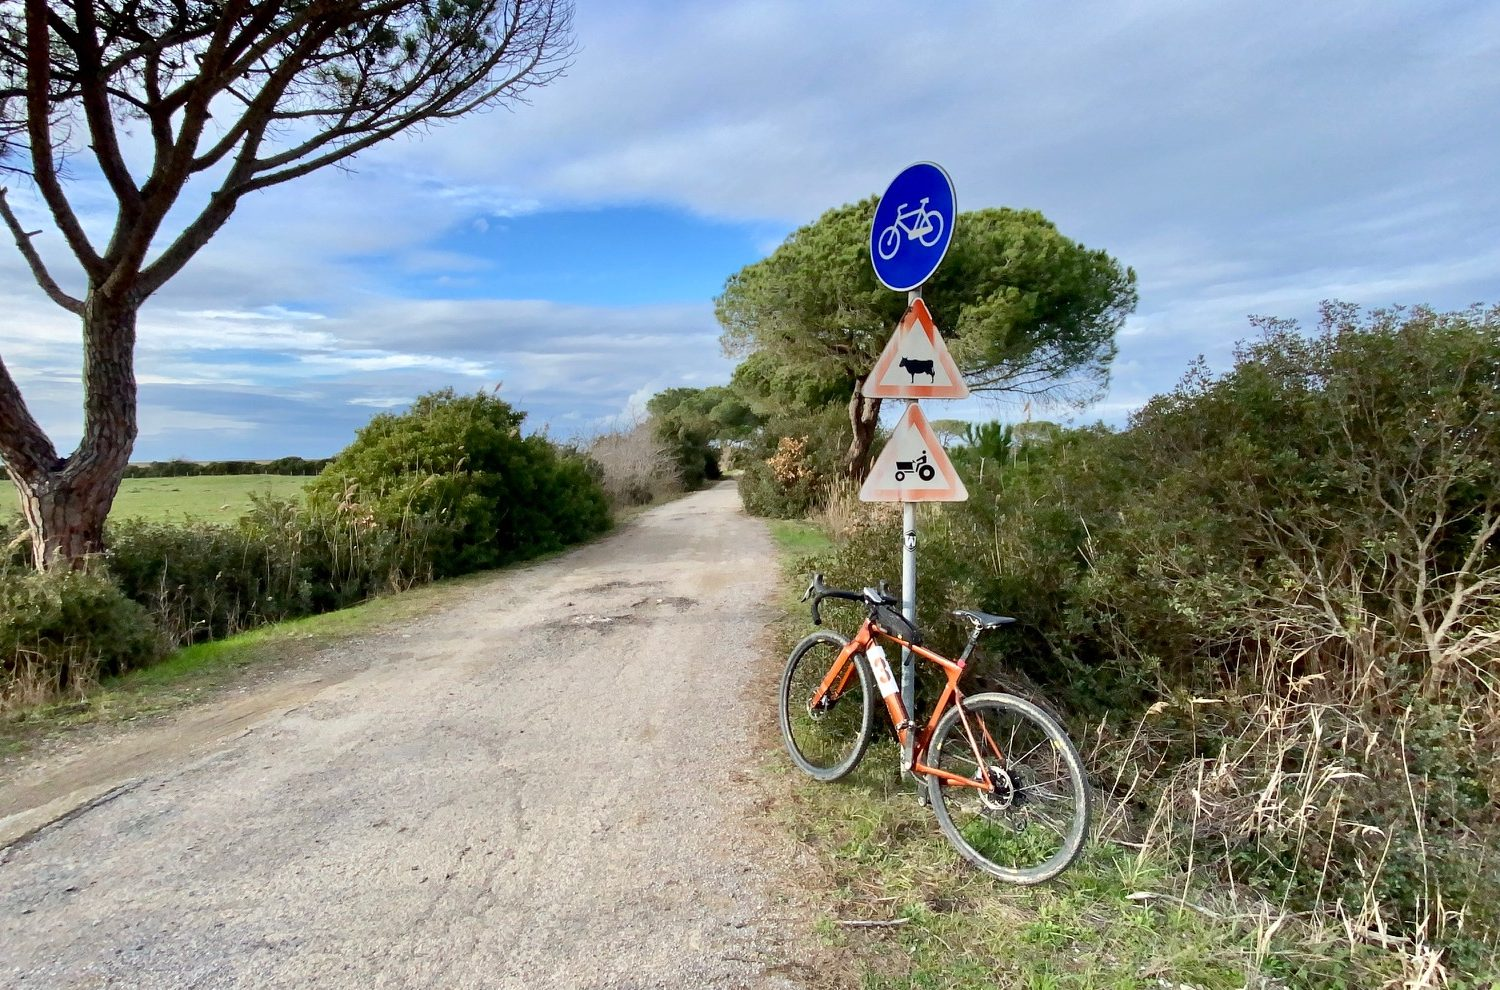 Weekend in E-Bike in Maremma